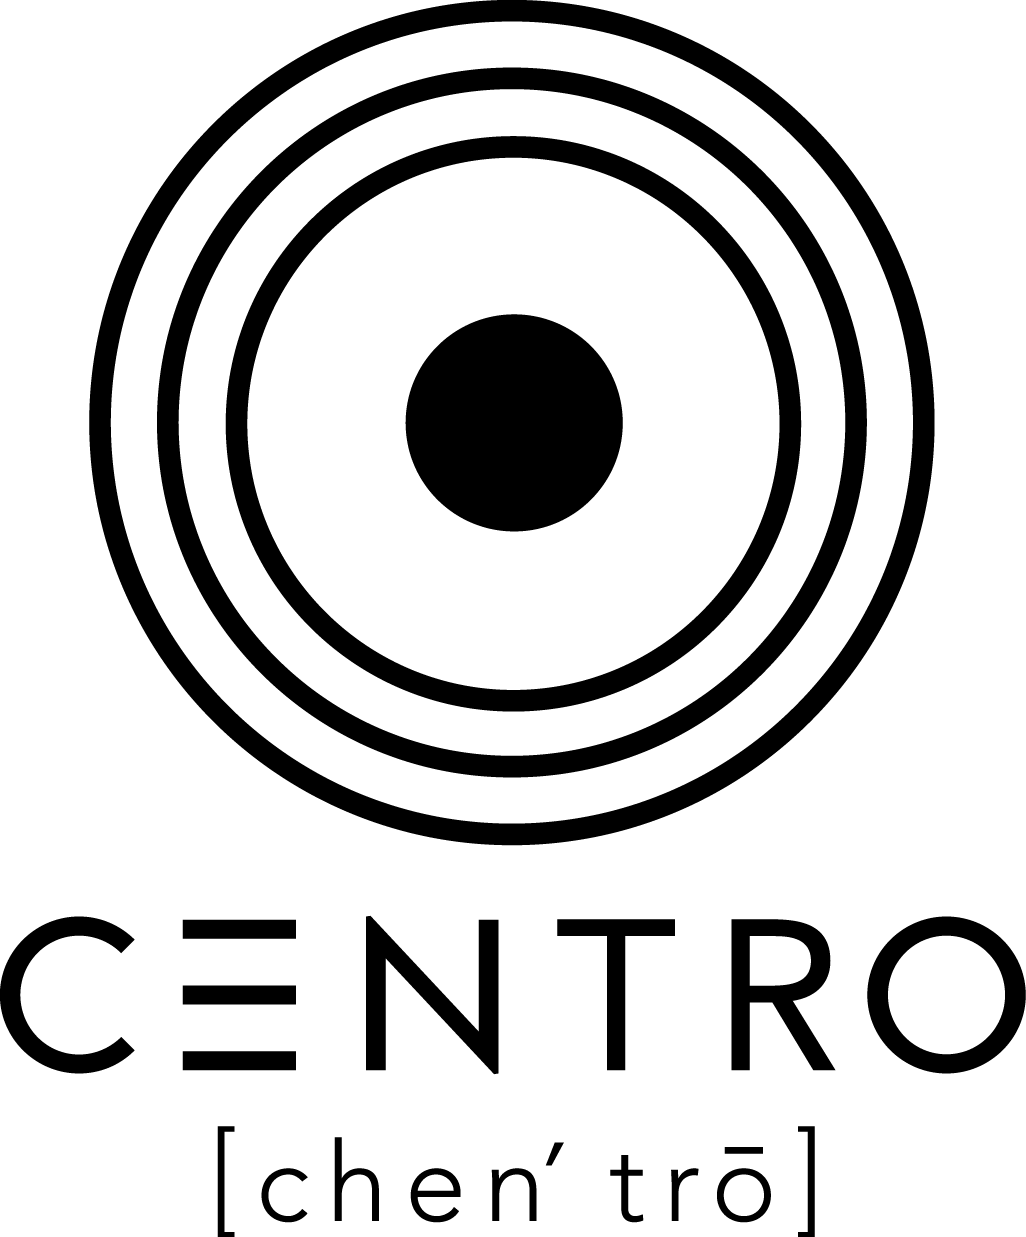 ceb5517608238 CENTRO+logo+Blk.png format 1500w